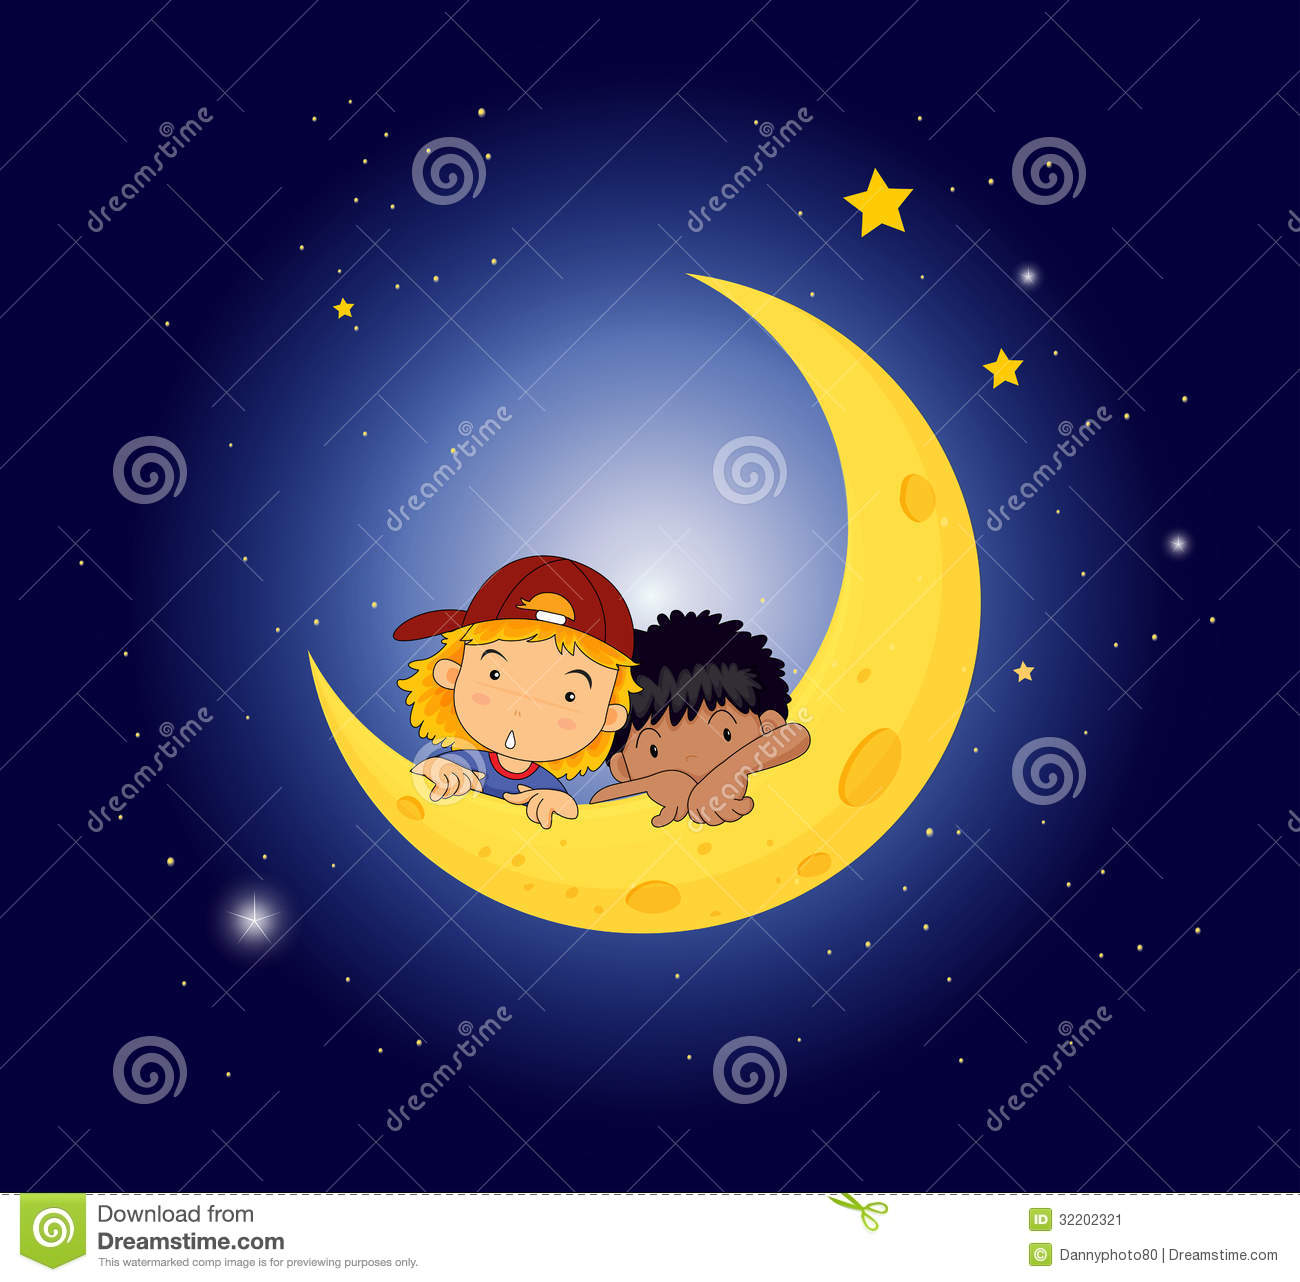 Kids at night with moon royalty free stock photography image - A Moon With Two Kids Stock Image